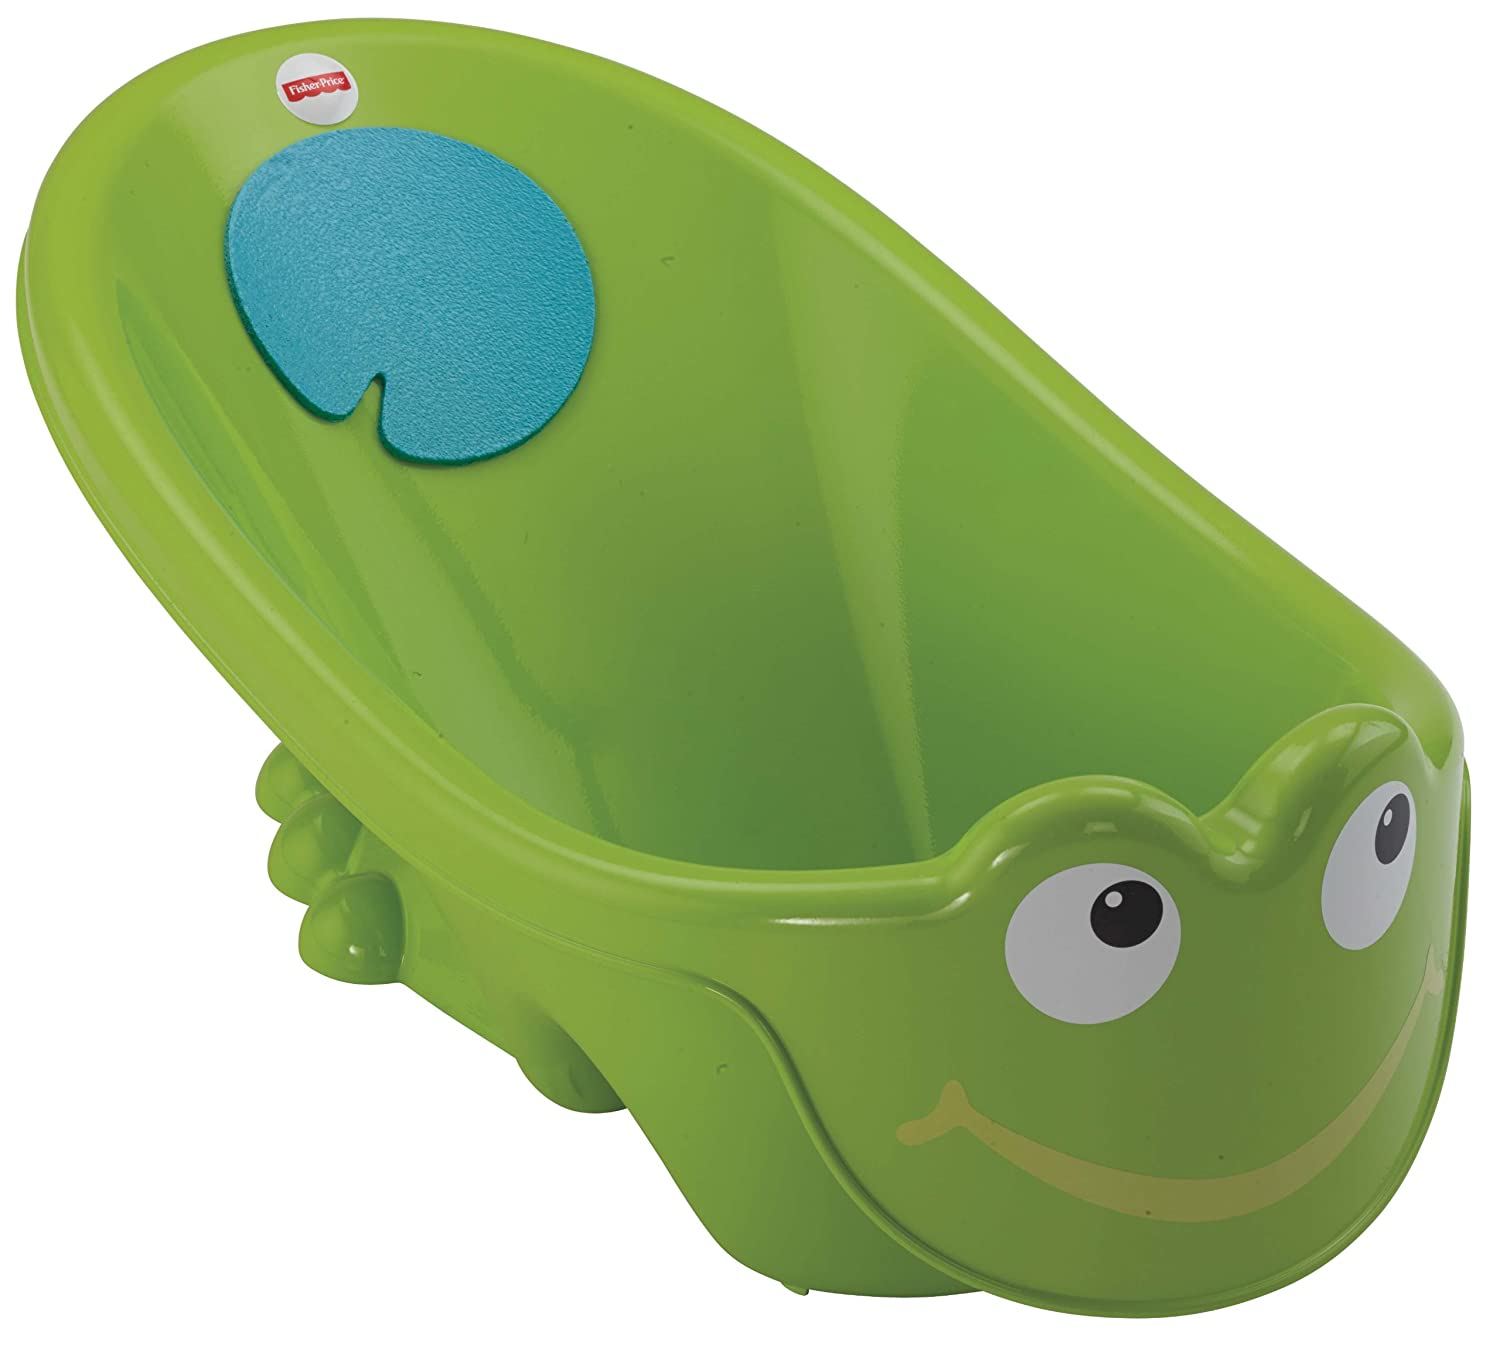 Amazon.com : Fisher-Price Bath Tub, Tadpole (Discontinued by ...